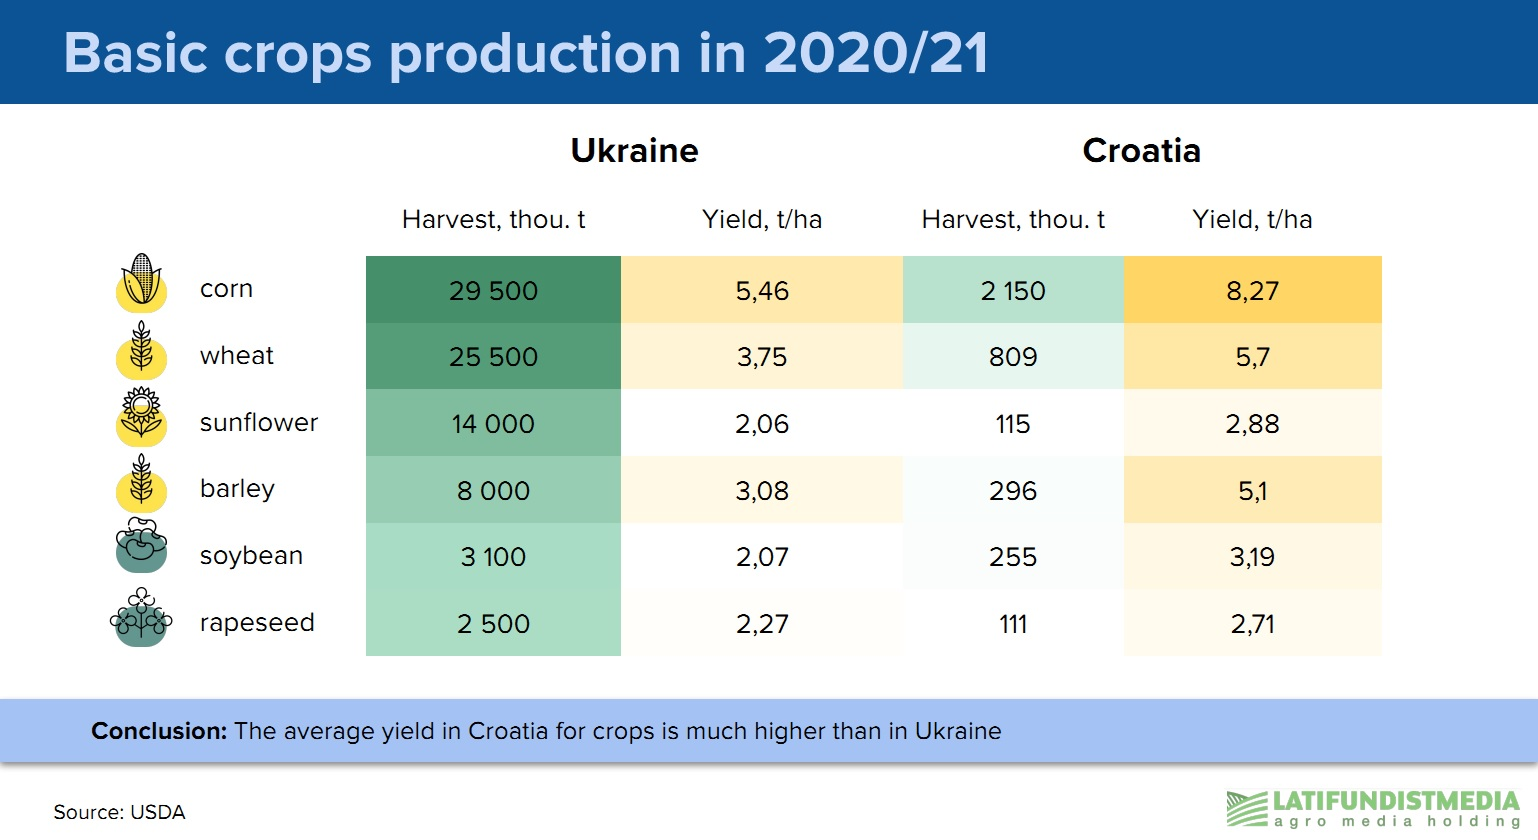 Basic crops production in Ukraine and Croatia in the 2020/21 season (click for full resolution)